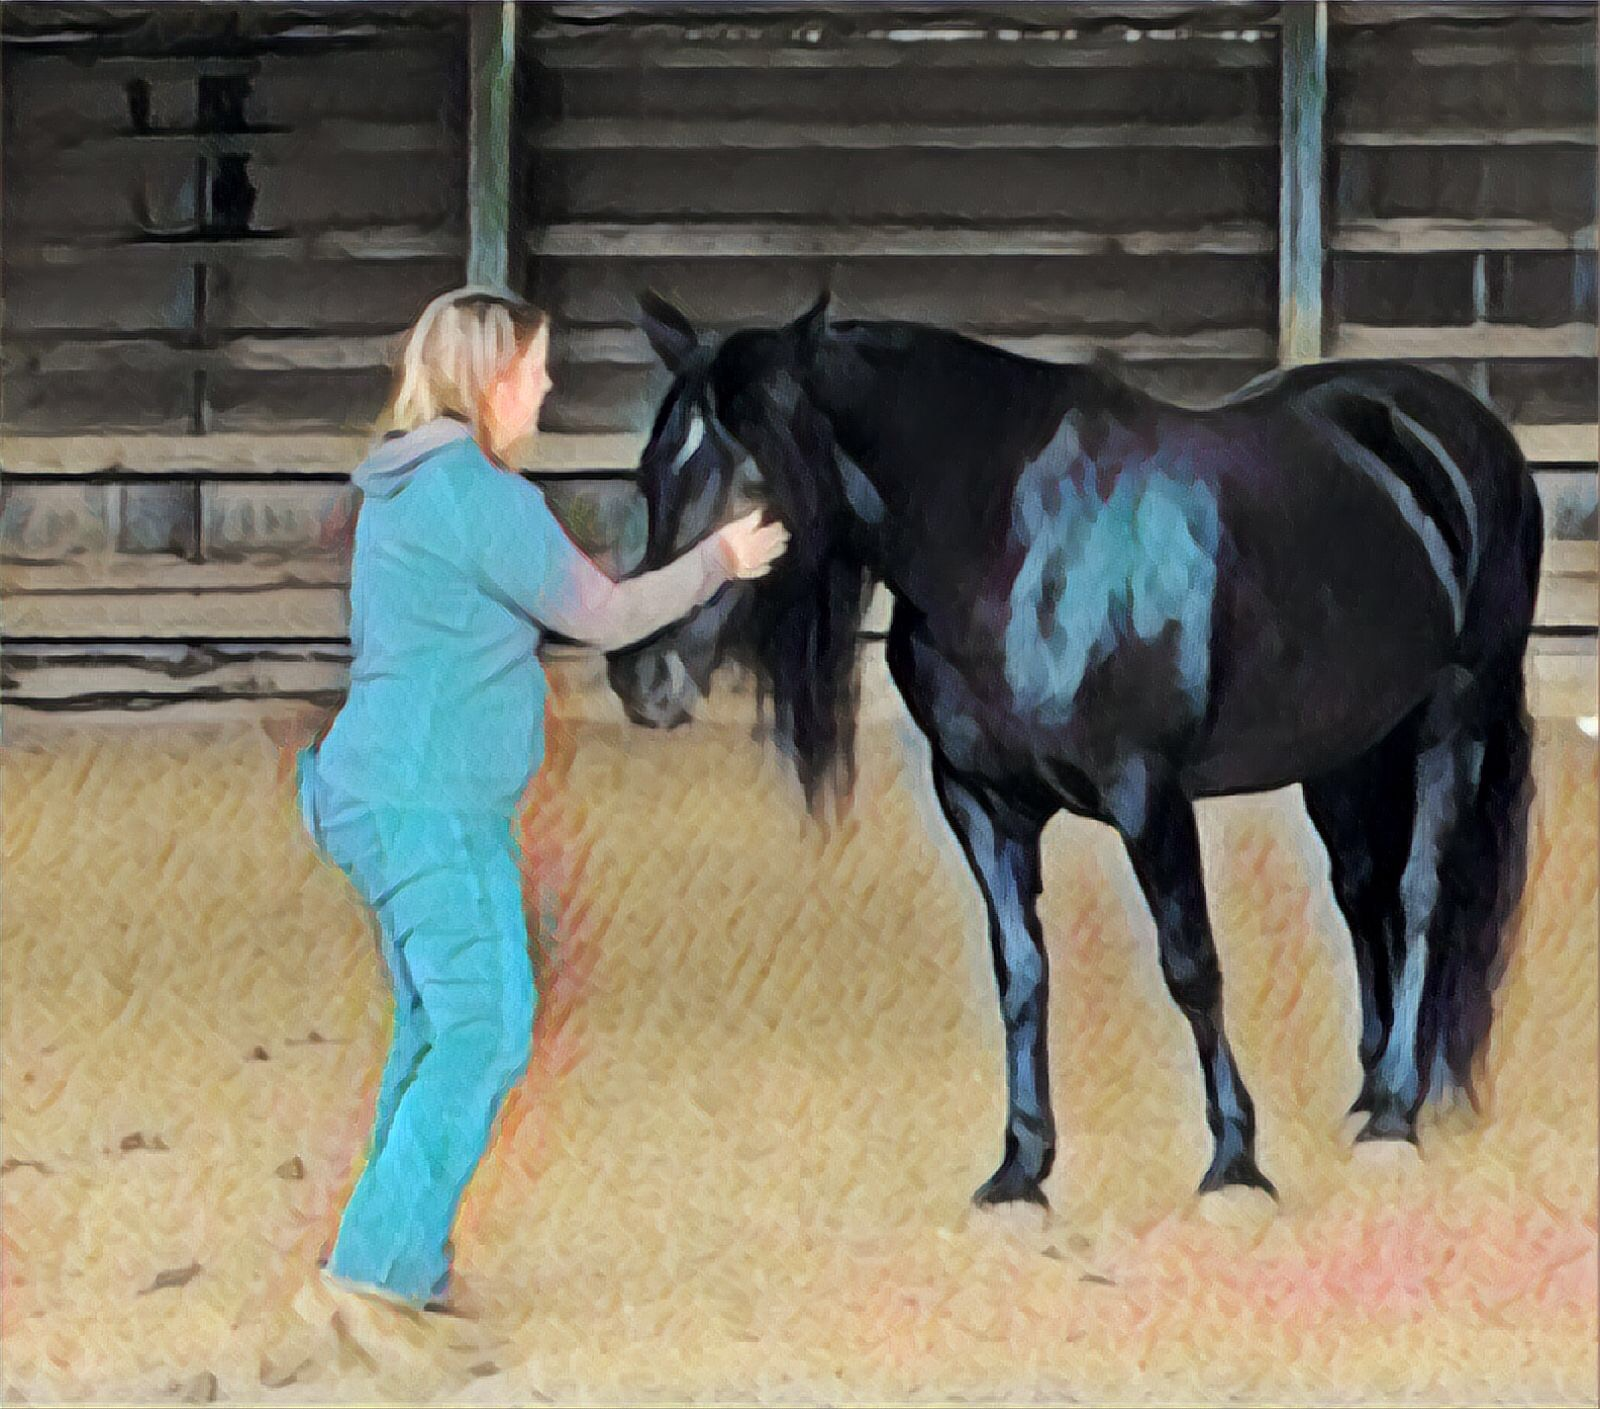 Connection with a horse is about being vulnerable